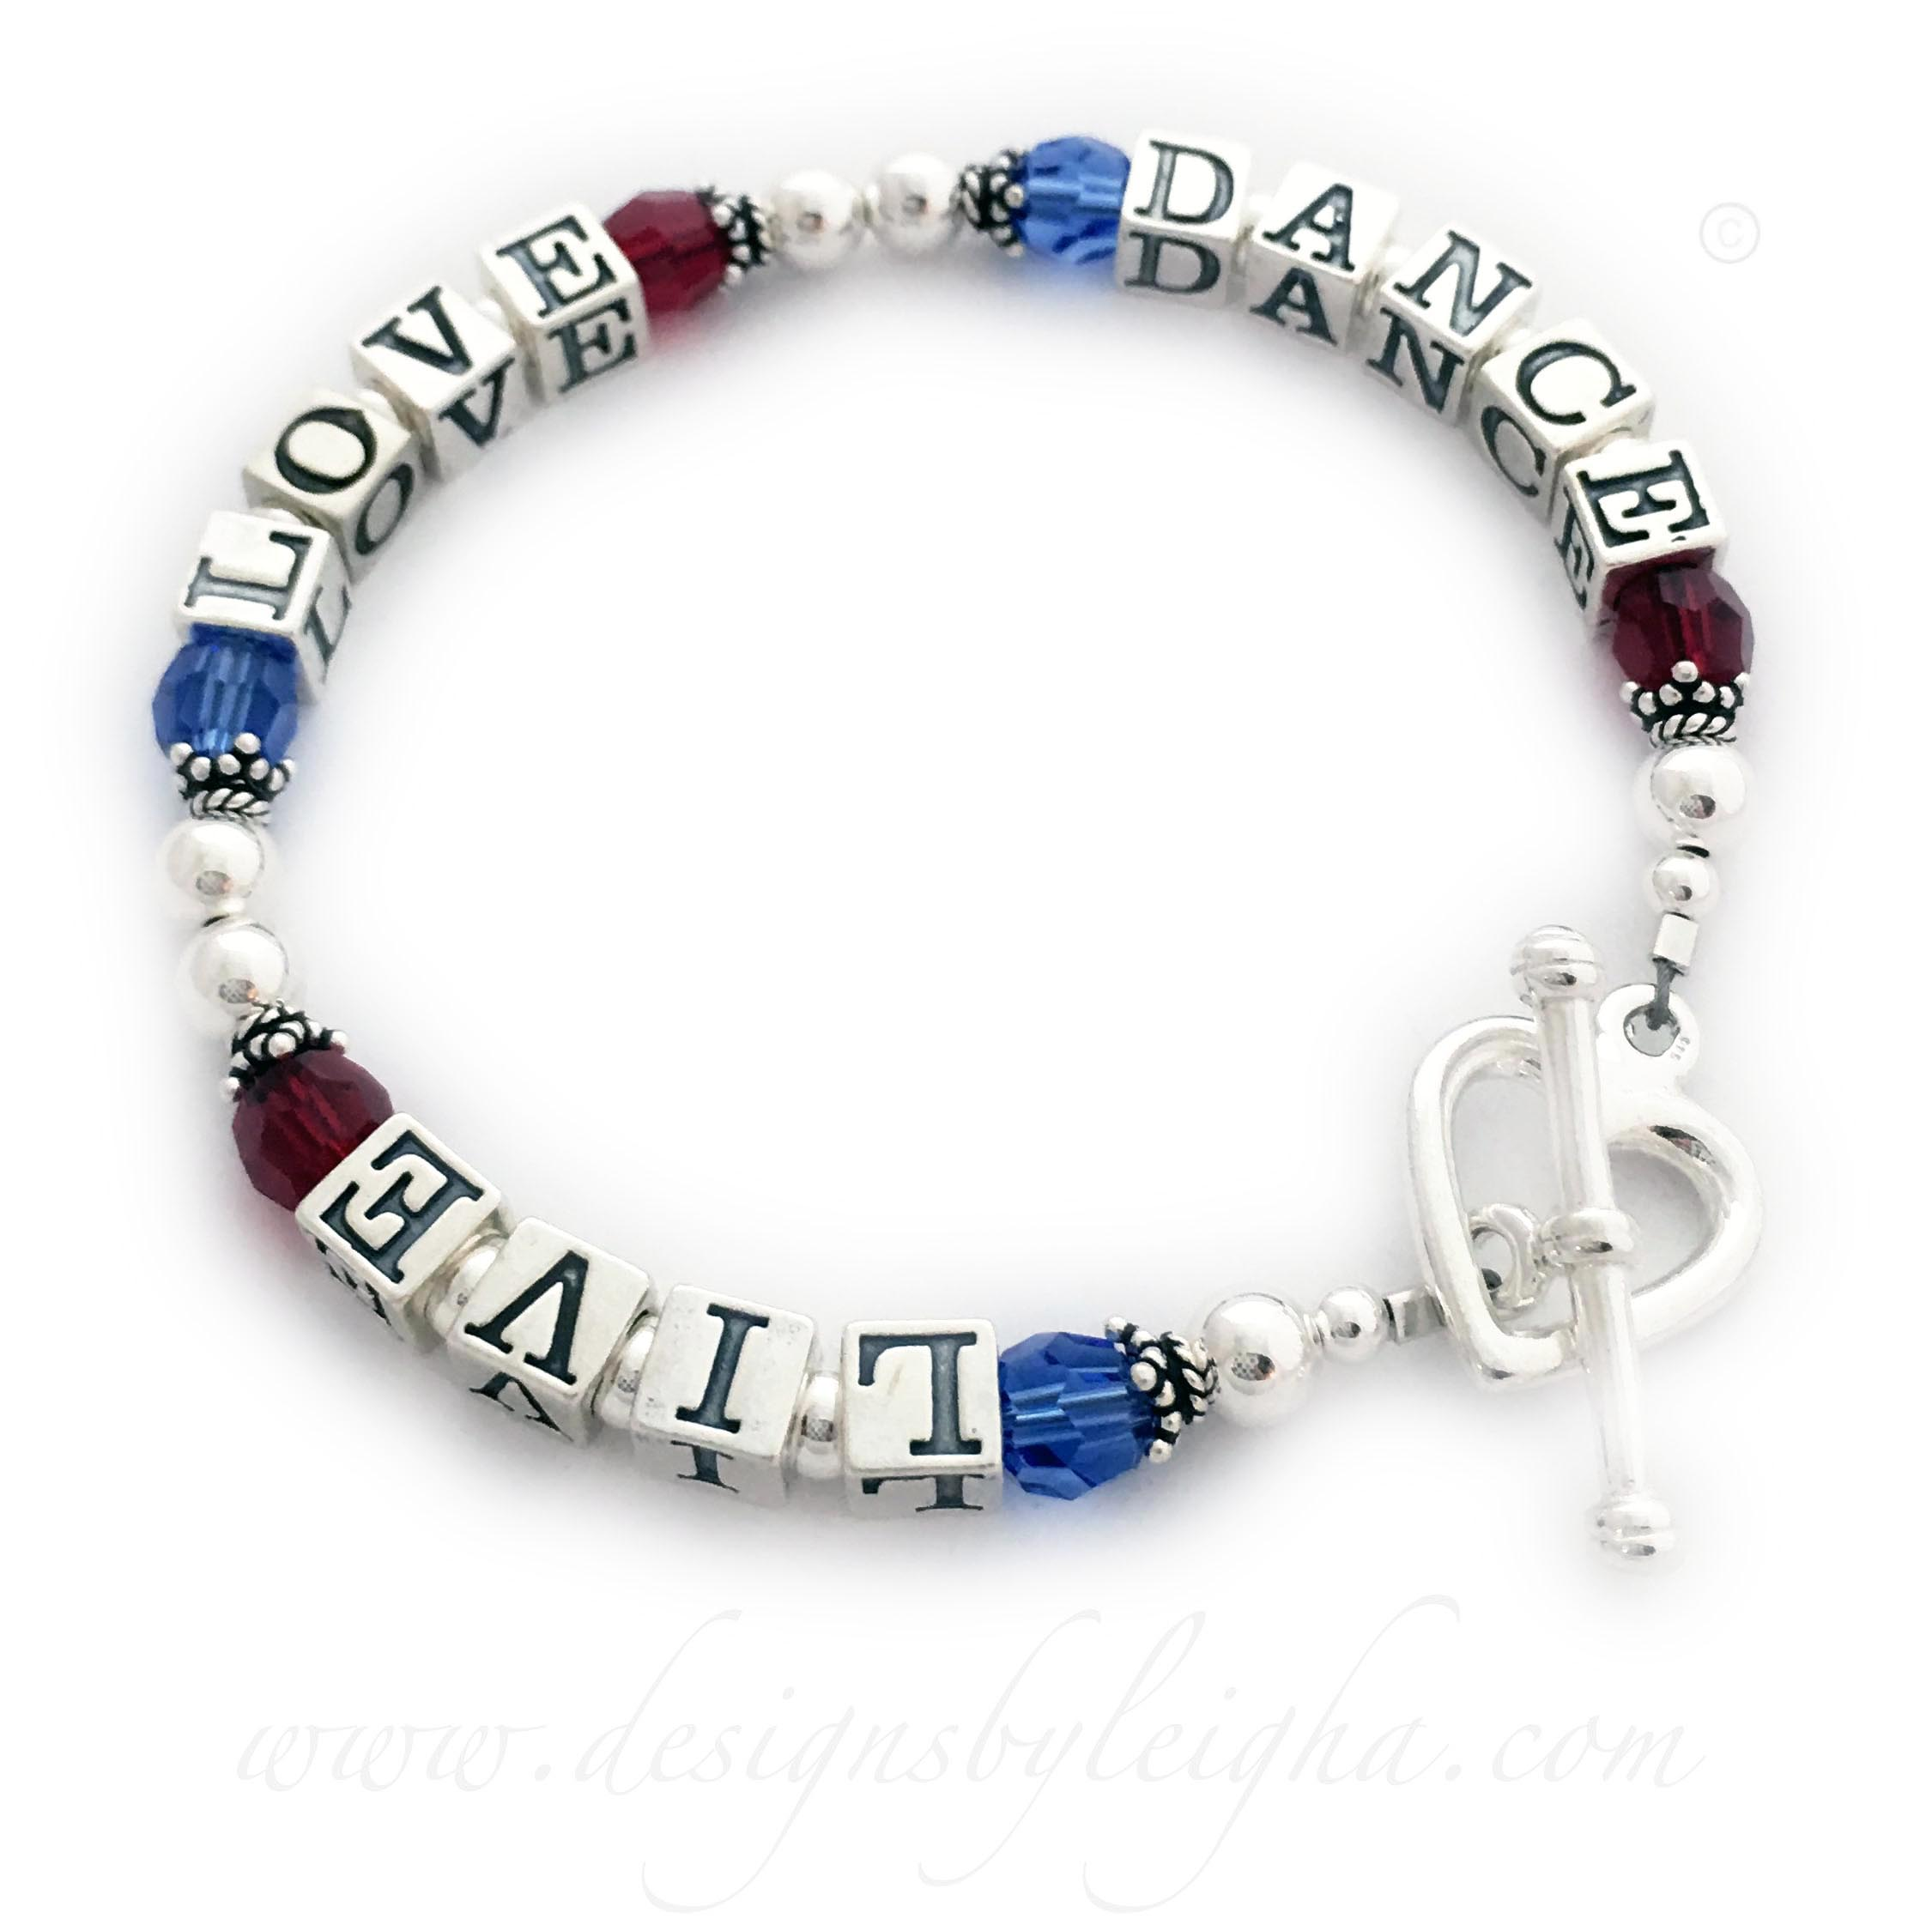 This Live Love Dance Bracelet is shown with blue and red Swarovski crystals. The beads are all .925 sterling silver. You choose the message, clasp and color of the crystals during the ordering process. You may also add charms. They upgraded to a Heart Toggle Clasp.